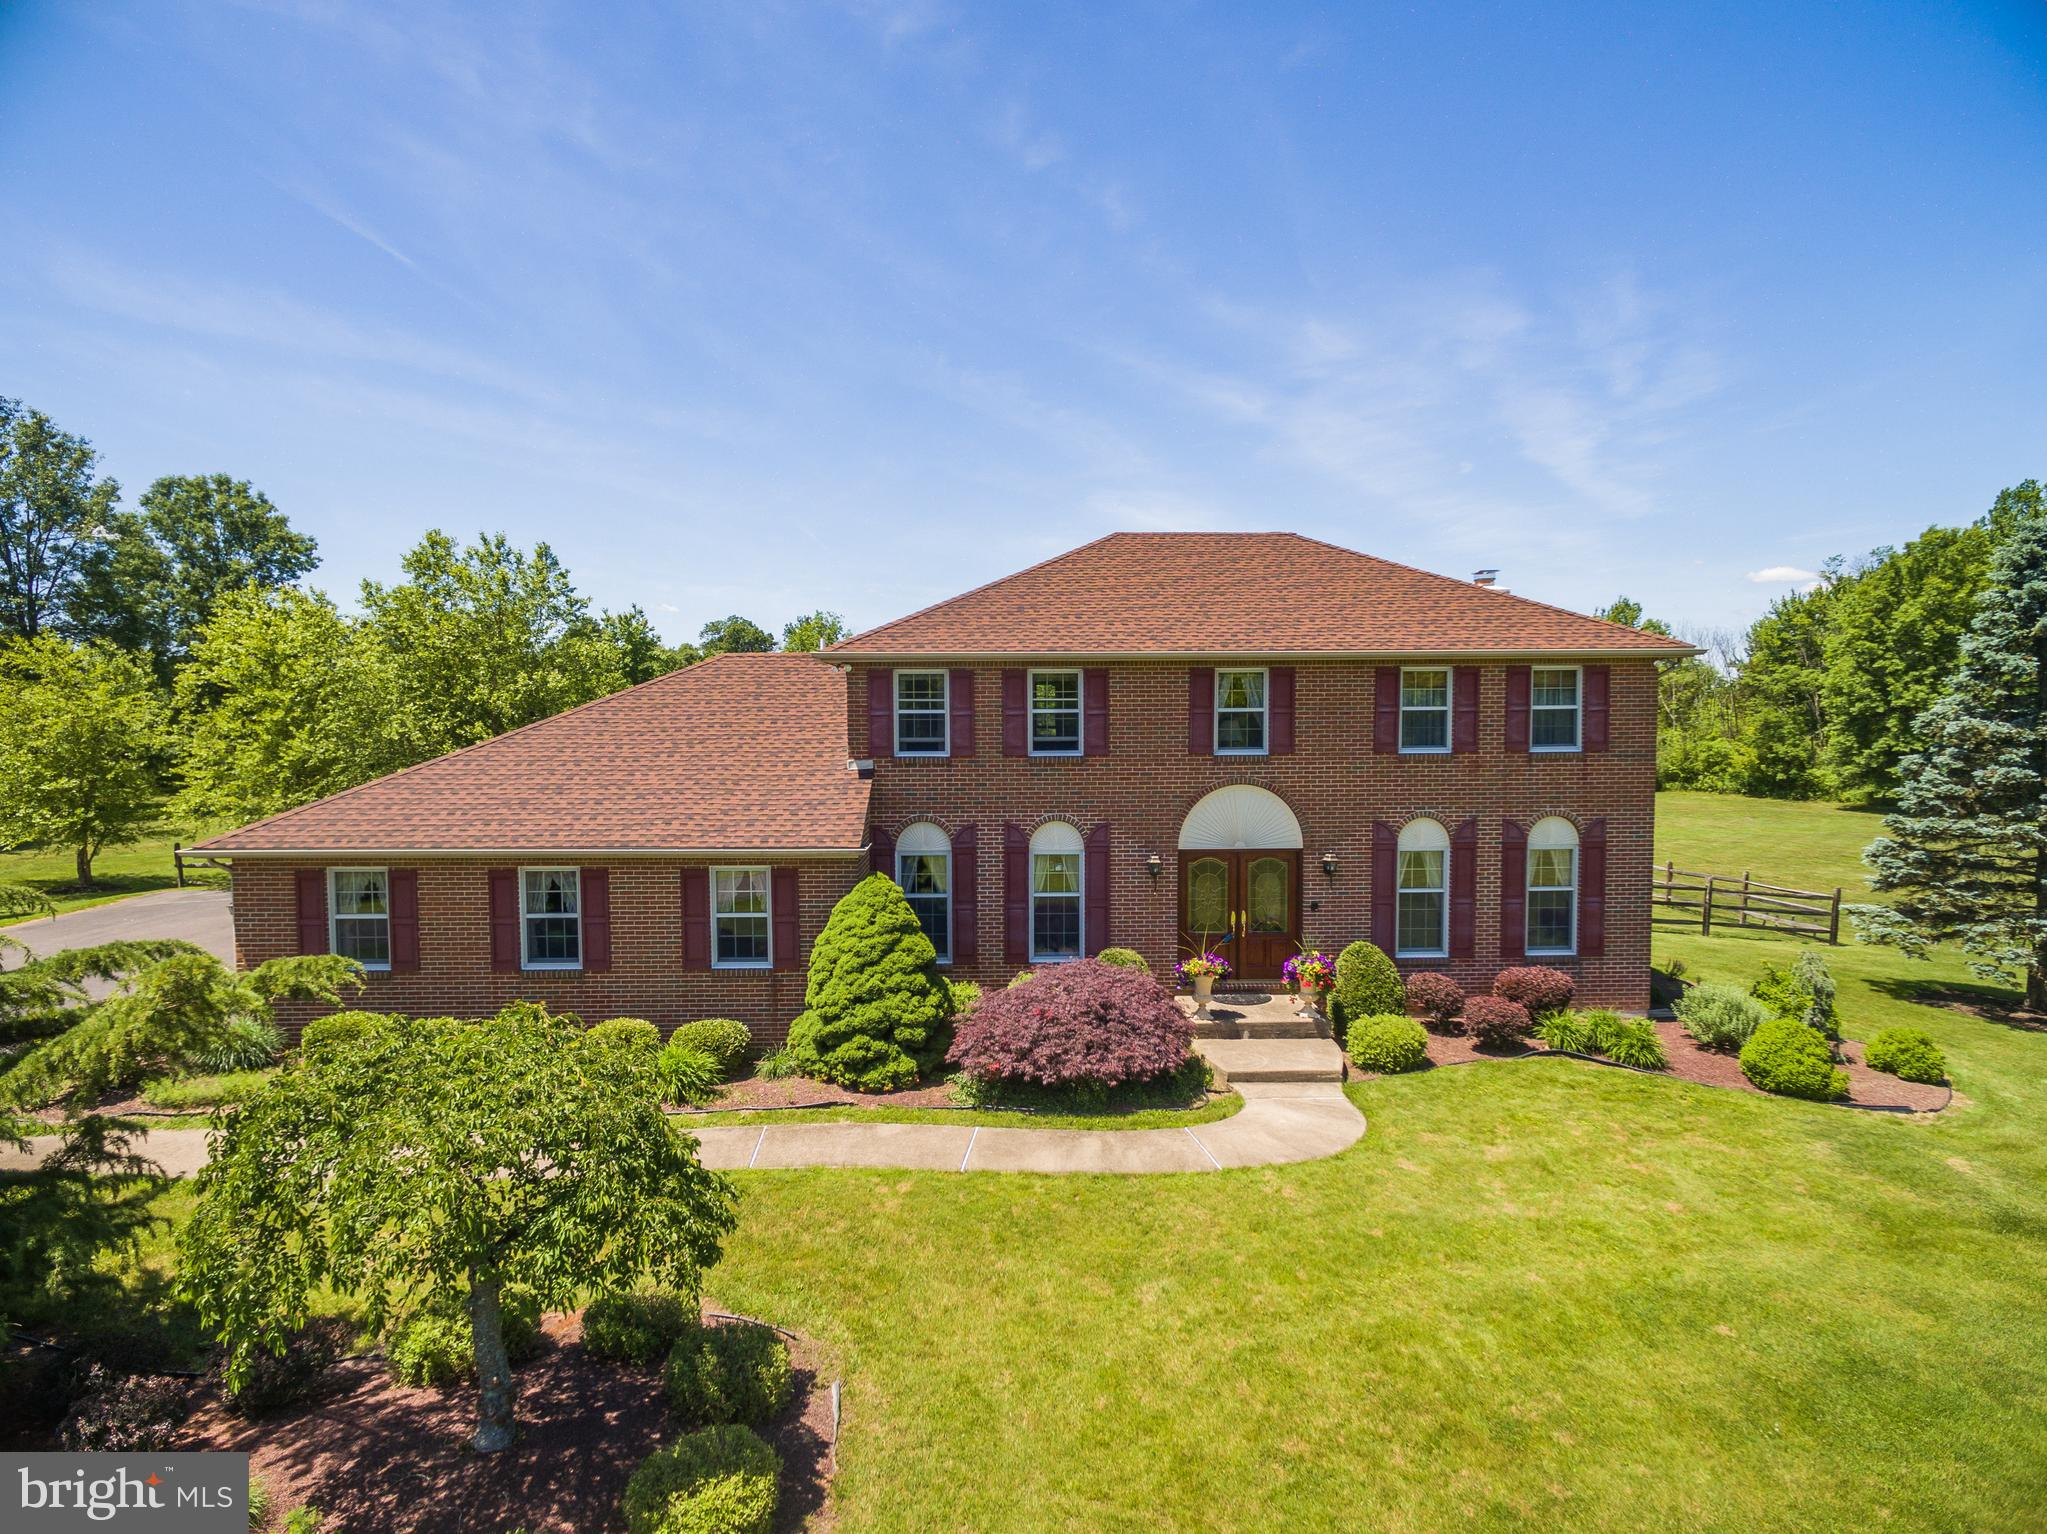 6617 BLUEBERRY LANE, PIPERSVILLE, PA 18947